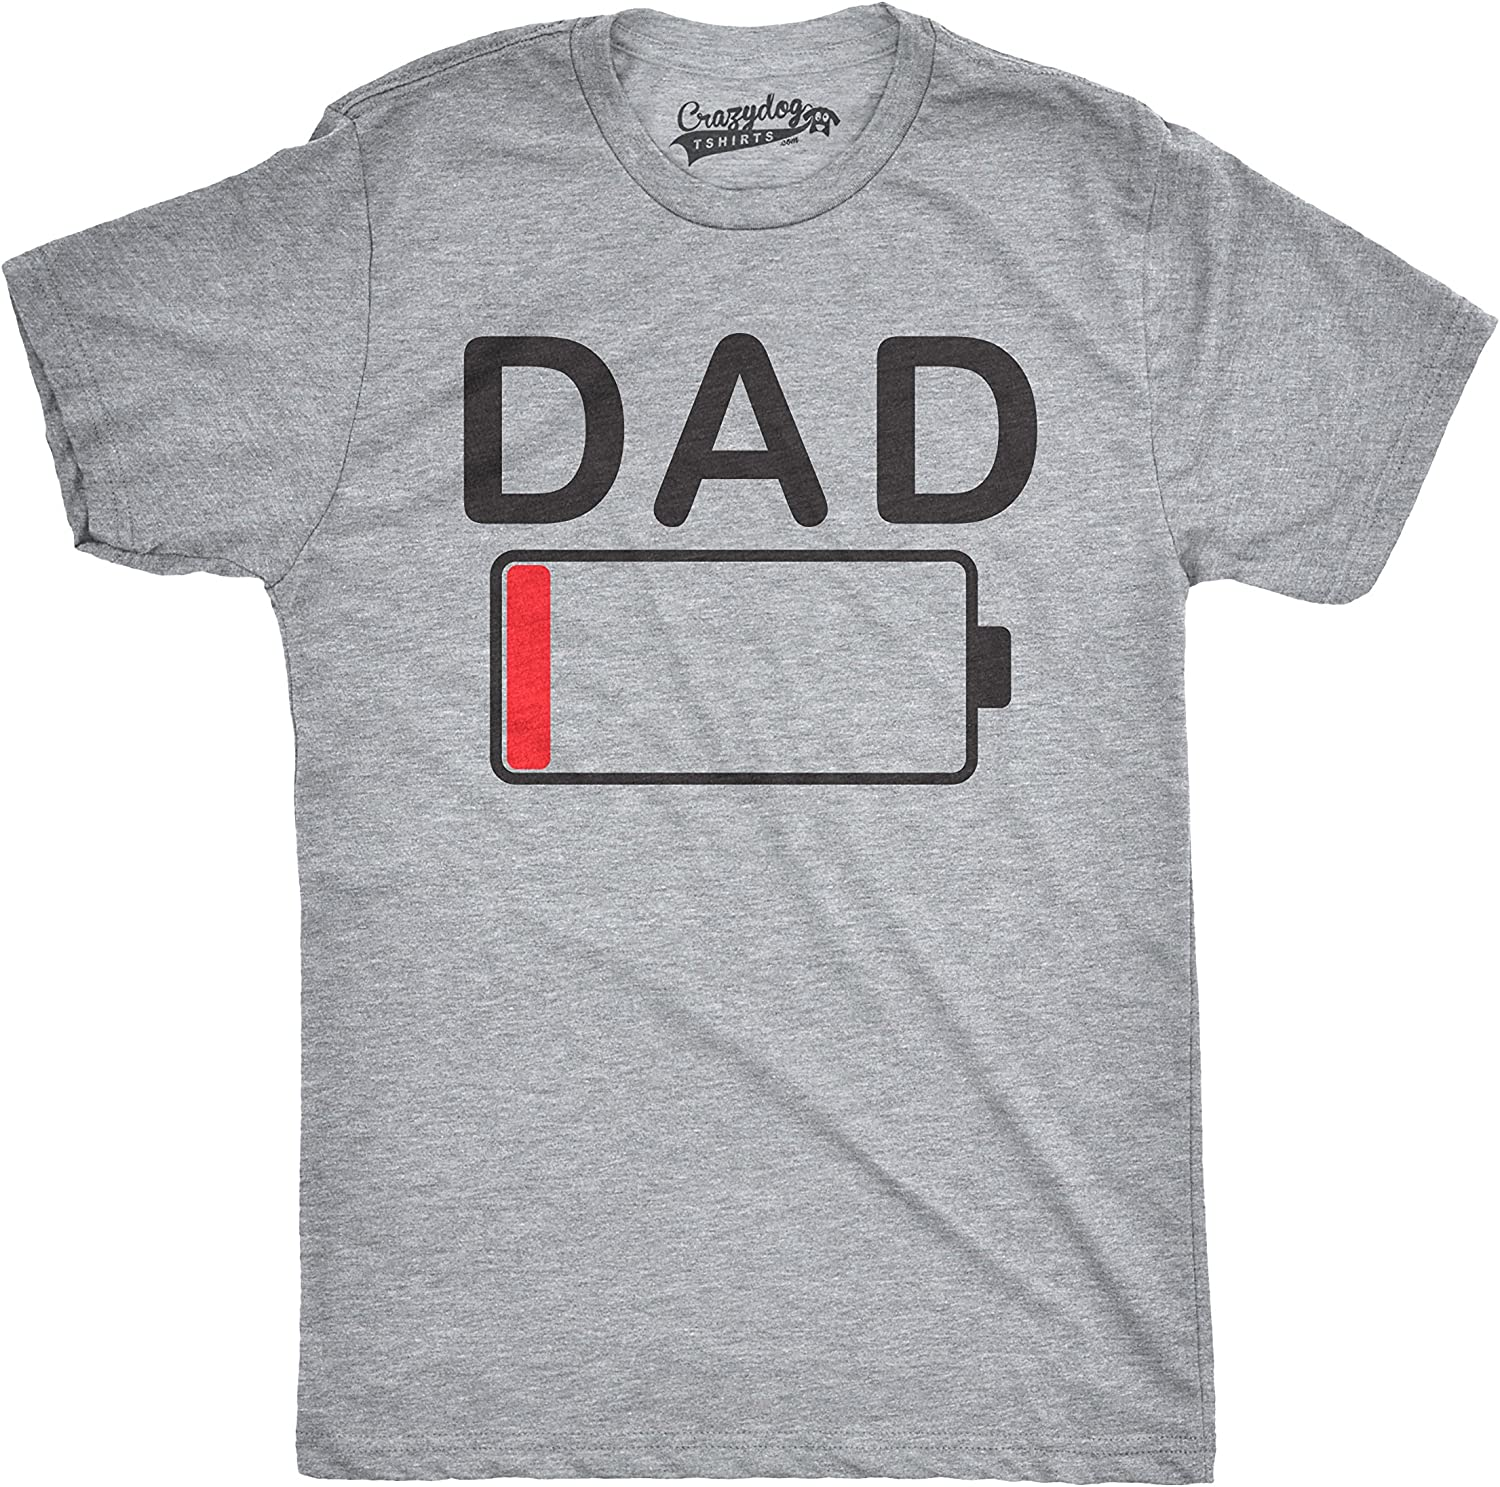 Crazy Dog Tshirts - Mens Dad Battery Low Funny Sarcastic Graphic Tired Parenting Fathers Day T Shirt - Camiseta Divertidas: Amazon.es: Ropa y accesorios